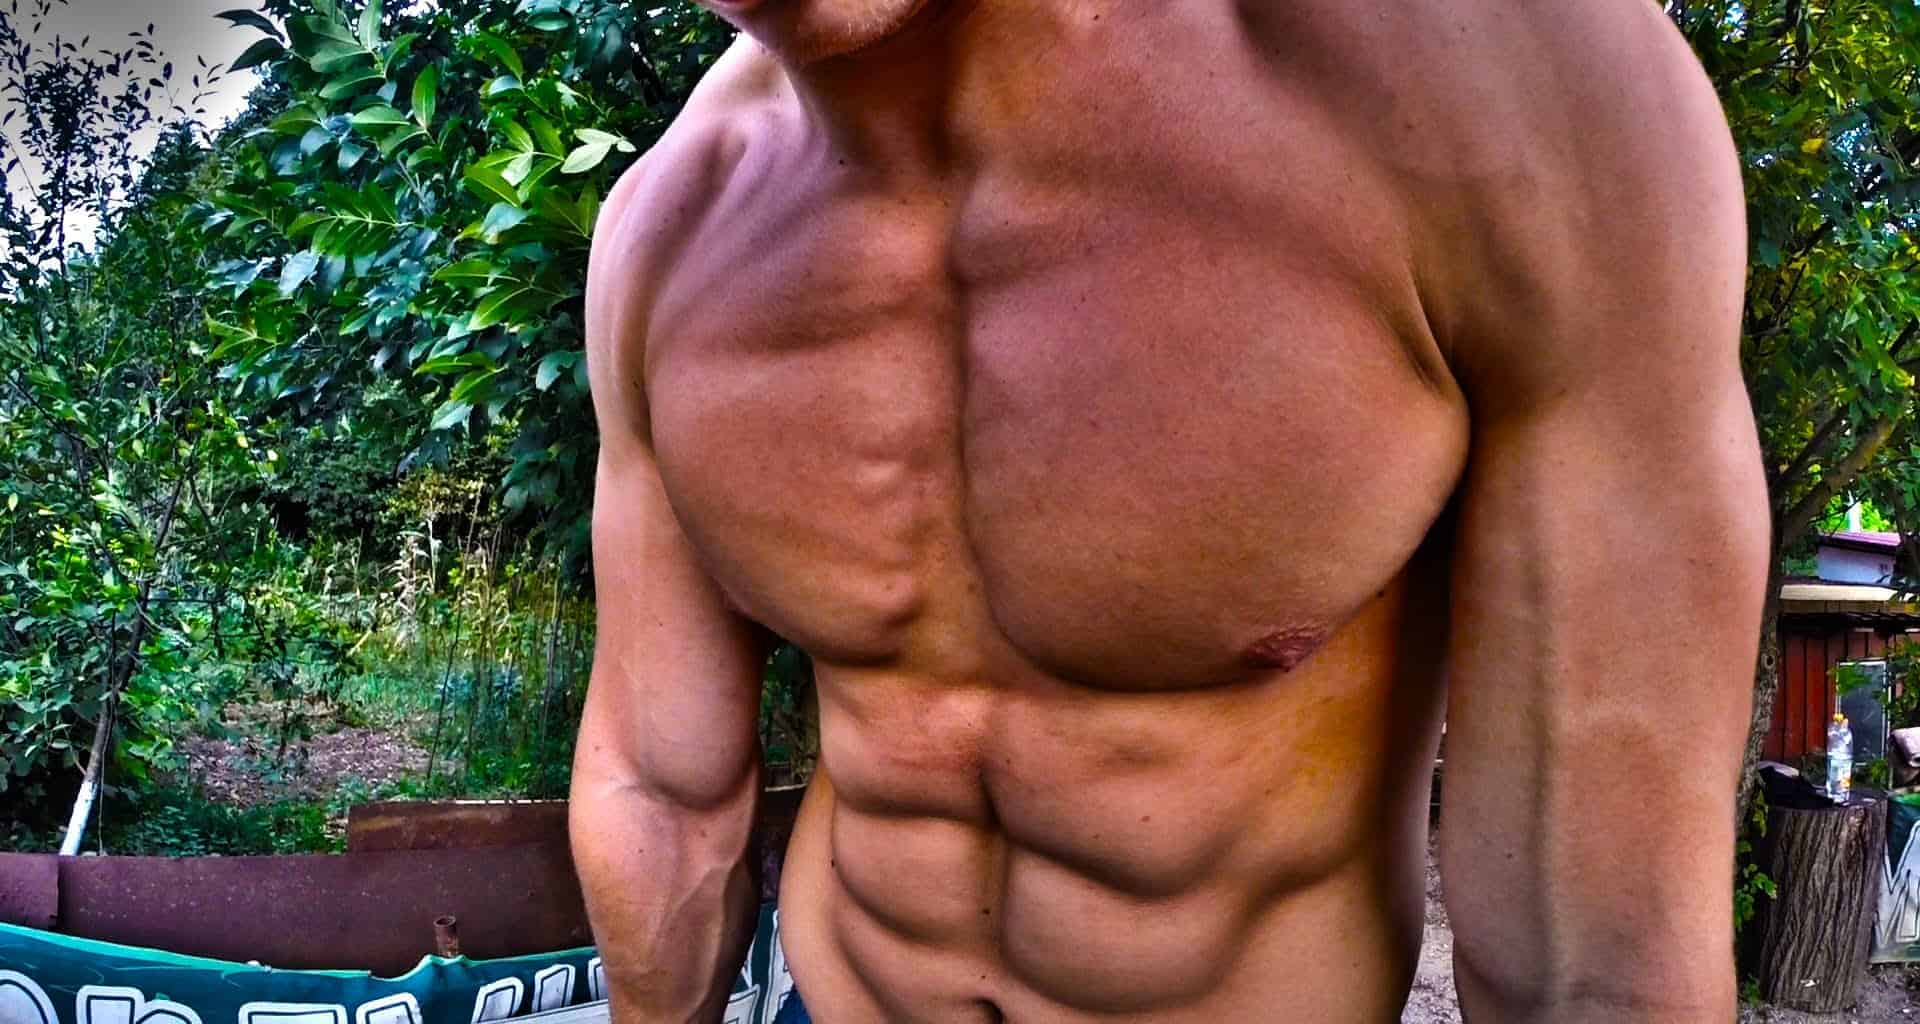 tips to target various parts of the pecs